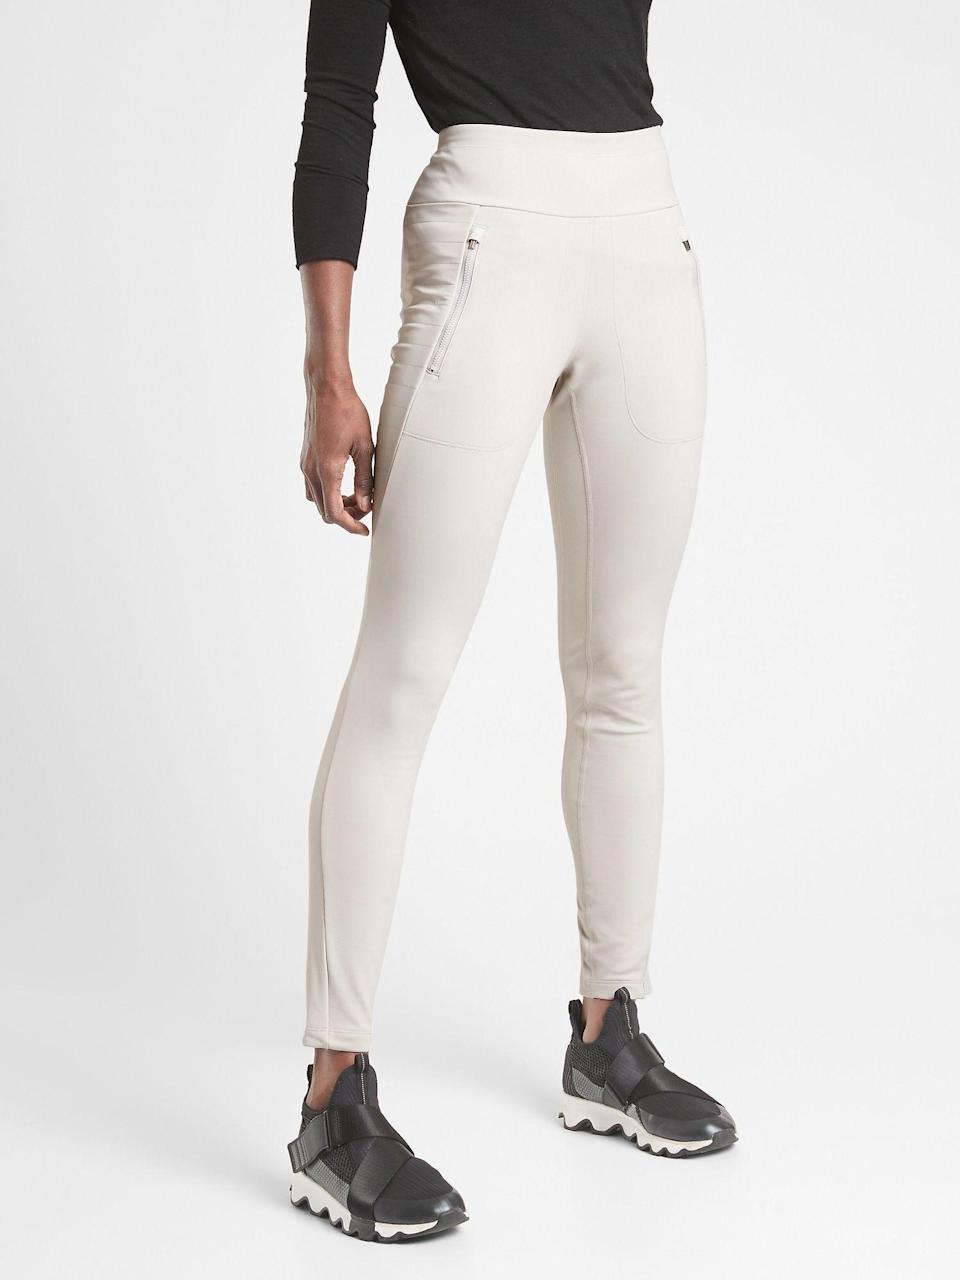 """<p><strong>Athleta</strong></p><p>athleta.gap.com</p><p><strong>$108.00</strong></p><p><a href=""""https://go.redirectingat.com?id=74968X1596630&url=https%3A%2F%2Fathleta.gap.com%2Fbrowse%2Fproduct.do%3Fpid%3D511126012%26pcid%3D999%26vid%3D1%26searchText%3Dfleece%2Bleggings&sref=https%3A%2F%2Fwww.seventeen.com%2Ffashion%2Fg34440479%2Fbest-winter-leggings%2F"""" rel=""""nofollow noopener"""" target=""""_blank"""" data-ylk=""""slk:Shop Now"""" class=""""link rapid-noclick-resp"""">Shop Now</a></p><p>Perfect for cold weather training, these mid-weight fleece leggings made from recycled nylon will hold you in <em>and</em> keep you warm. Which also makes these ideal for those who just run cold and are searching for a pair of cozy winter leggings to lounge on the couch in.</p>"""